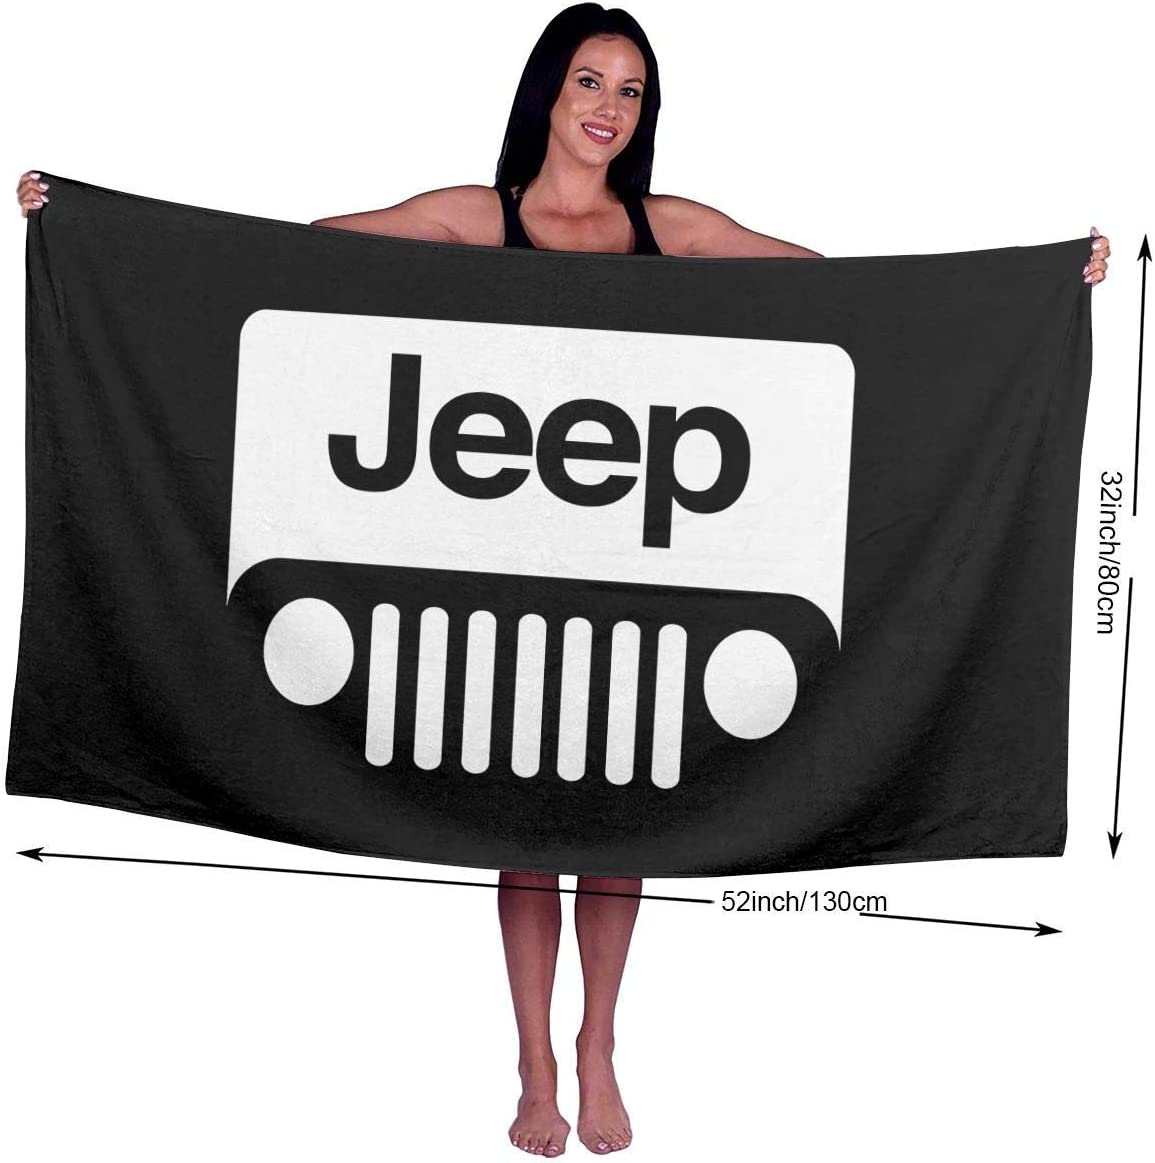 Ewtretr Telo//Asciugamano Mare Character Jeep Beach Towels Ultra Absorbent Microfiber Bath Towel Picnic Mat for Men Women Kids